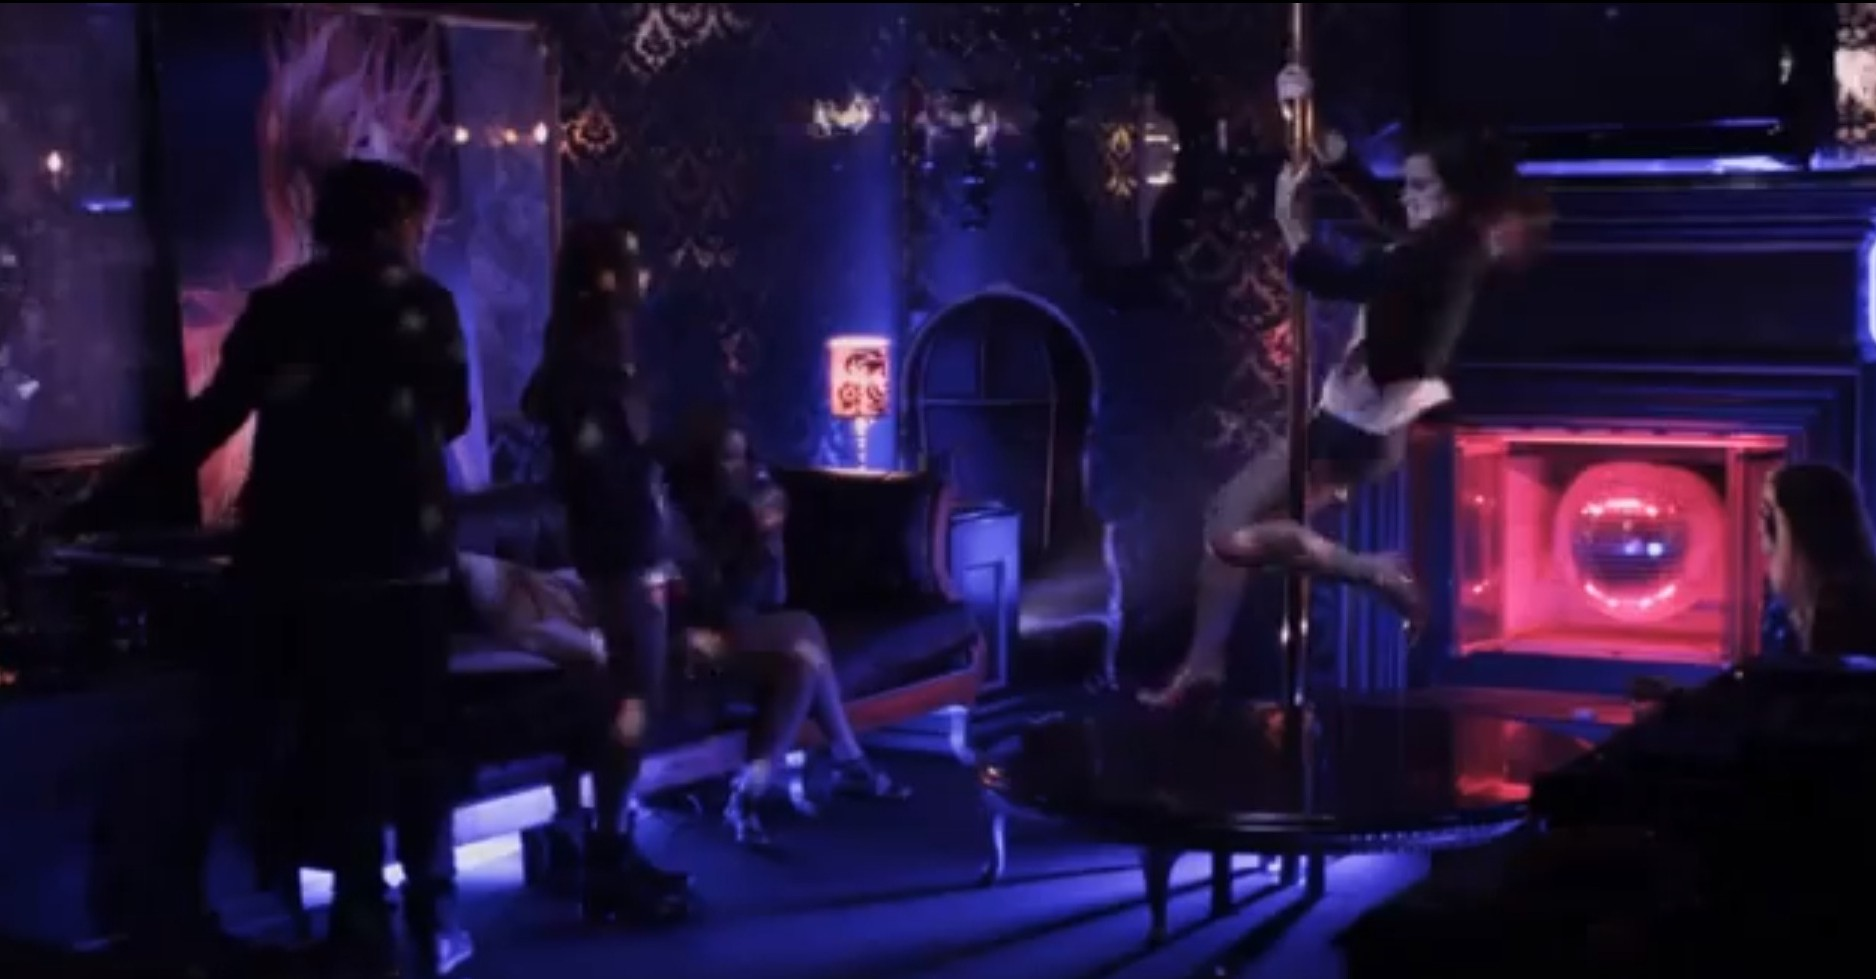 Emma Watson pole dances in The Bling Ring teaser trailer